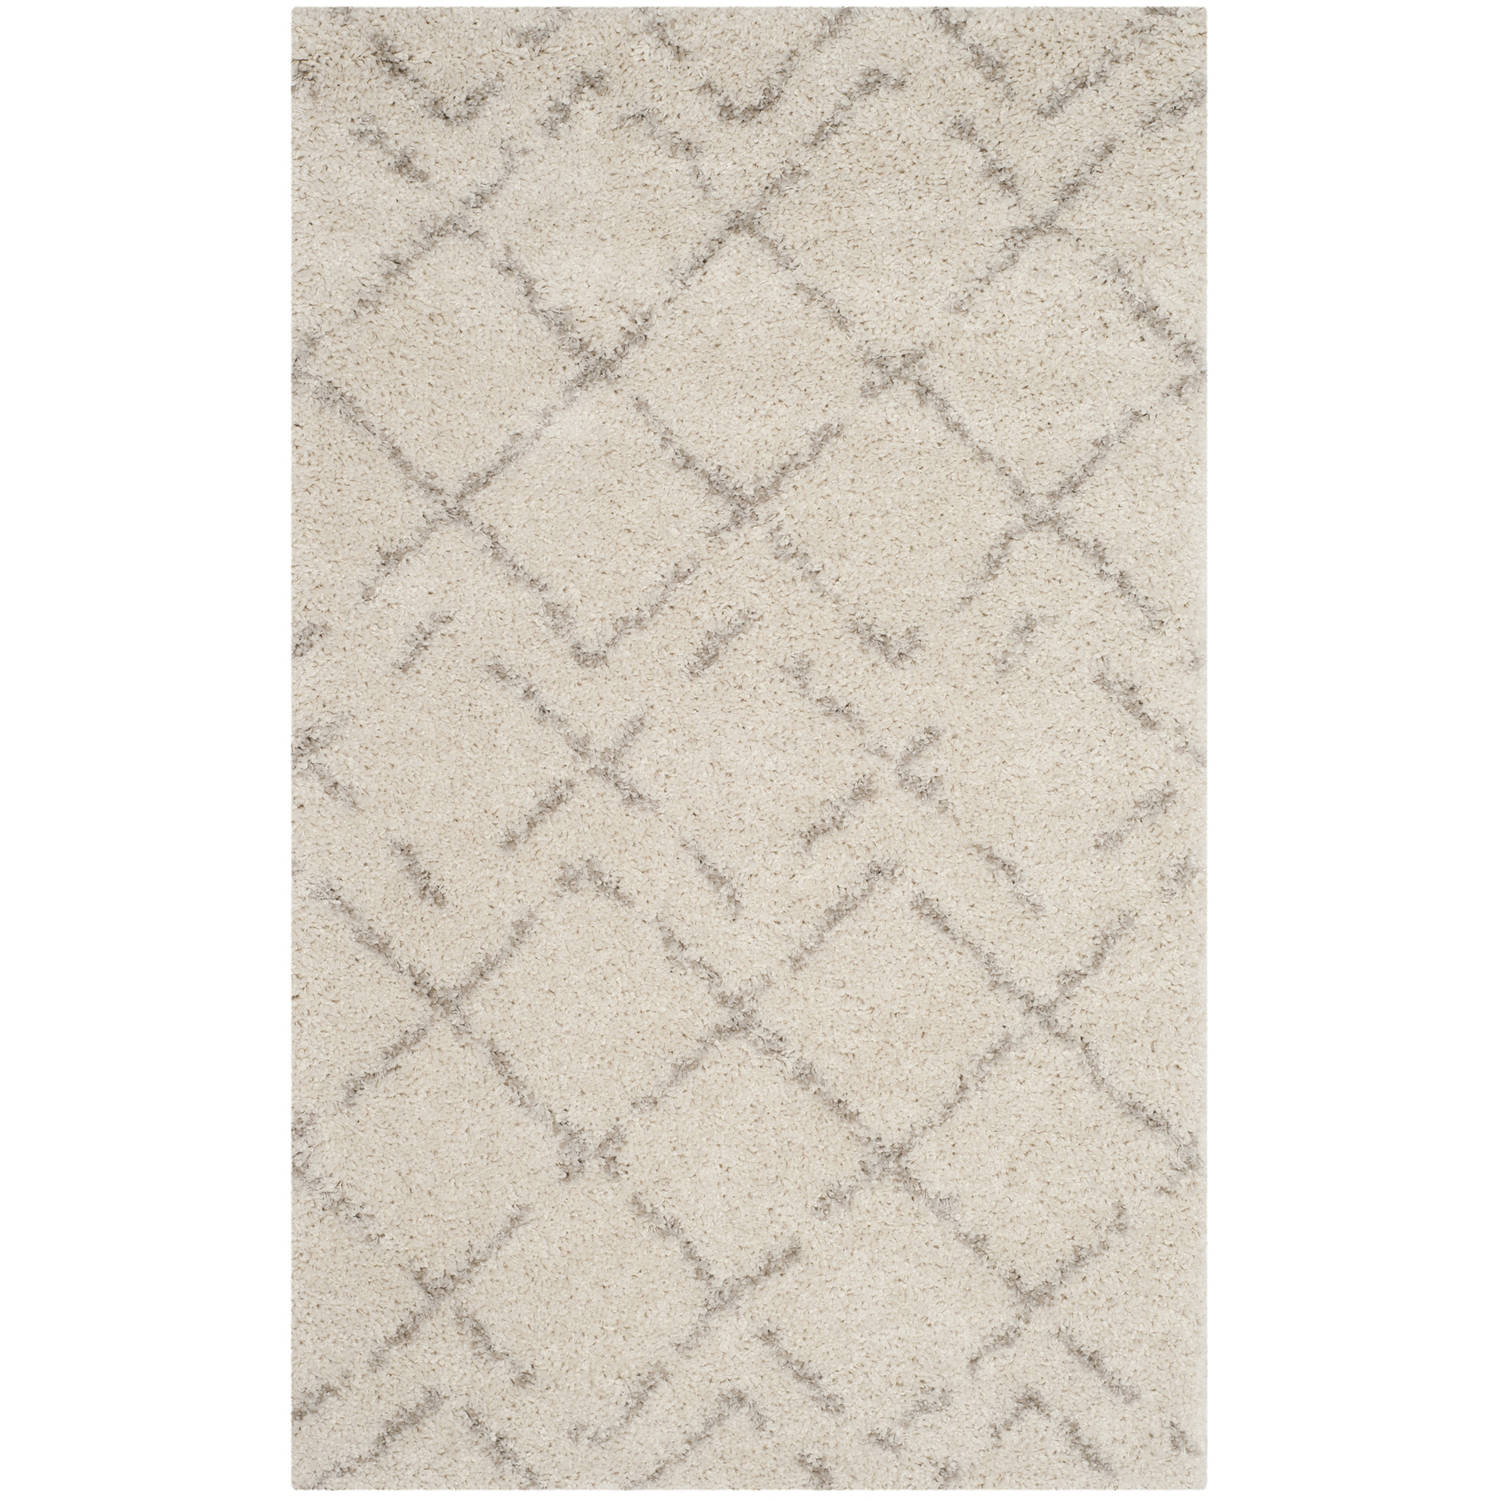 Safavieh Arizona Zarif Geometric Shag Area Rug or Runner